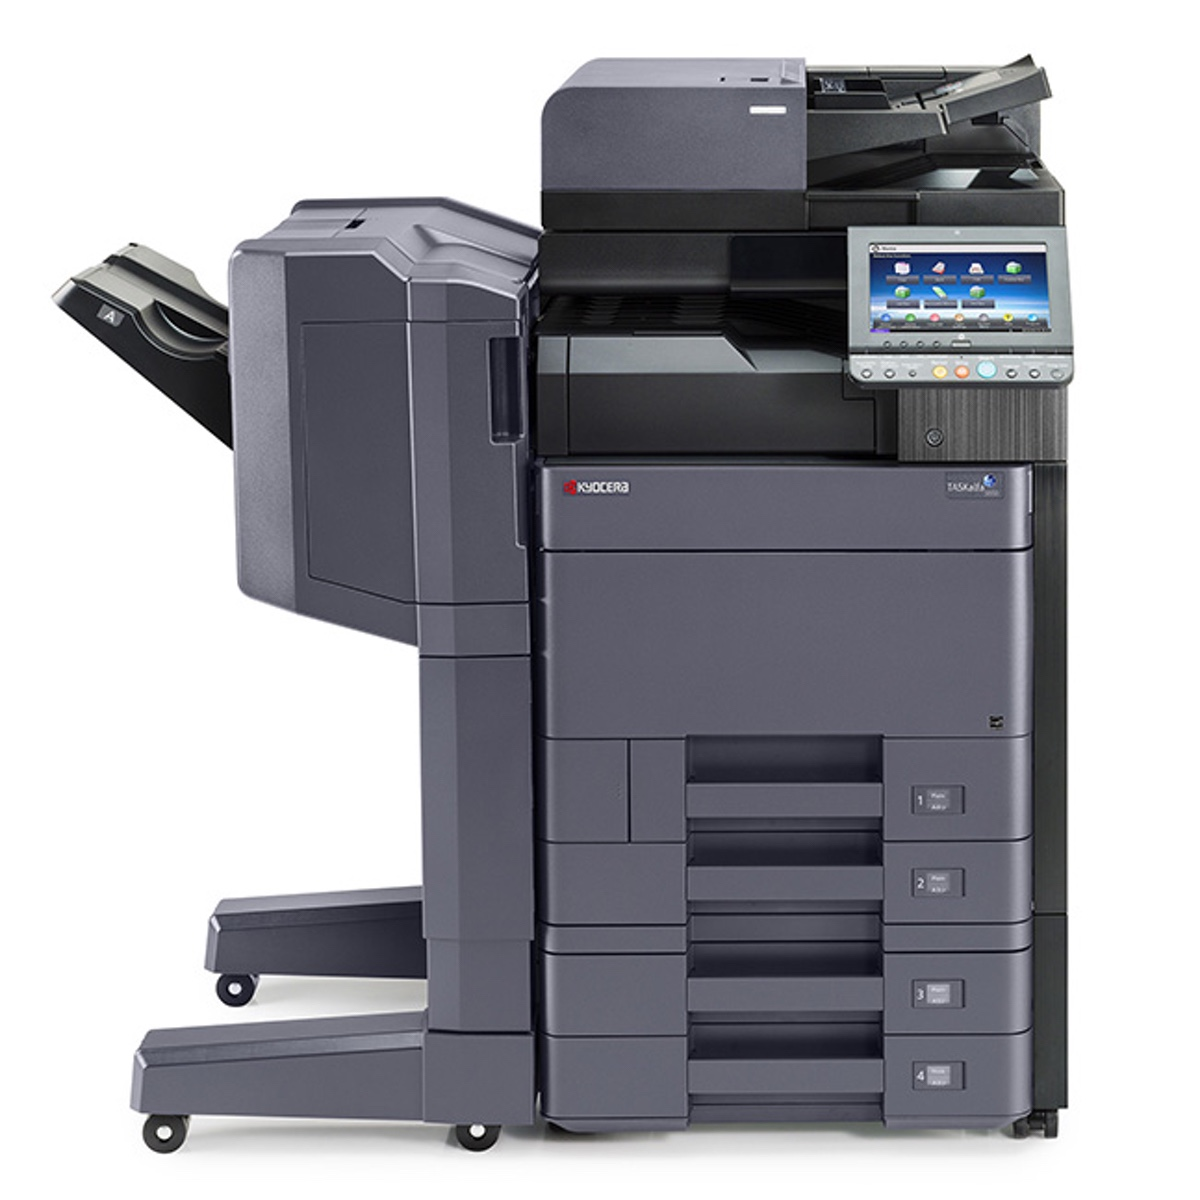 Kyocera Copiers:  The Kyocera TASKalfa 4002i Copier